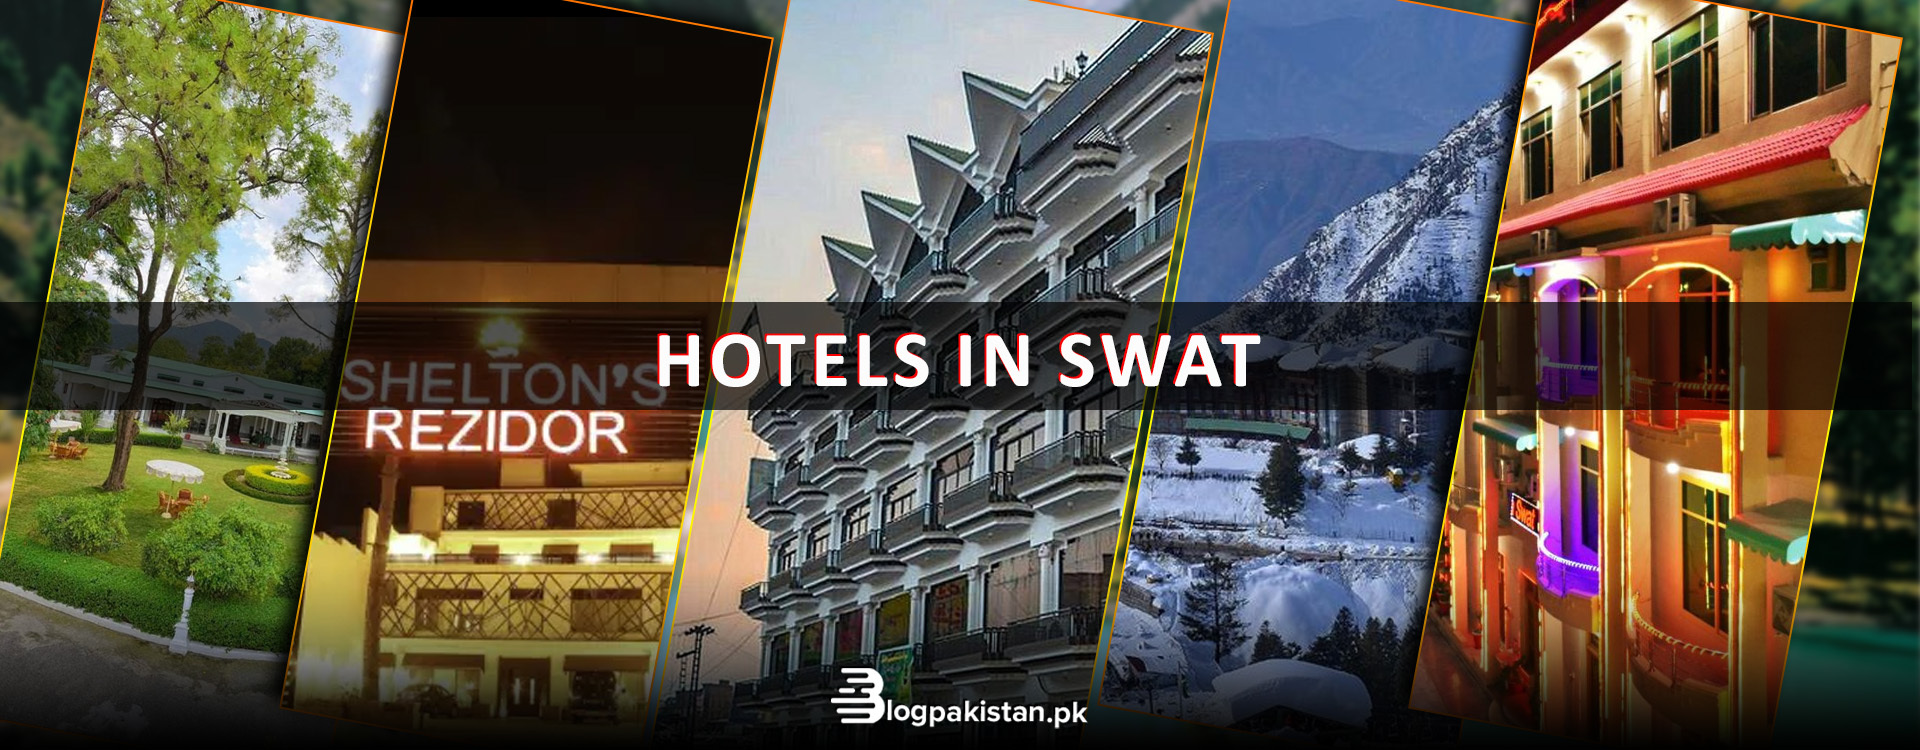 10 Luxury and Affordable Hotels in Swat, Pakistan